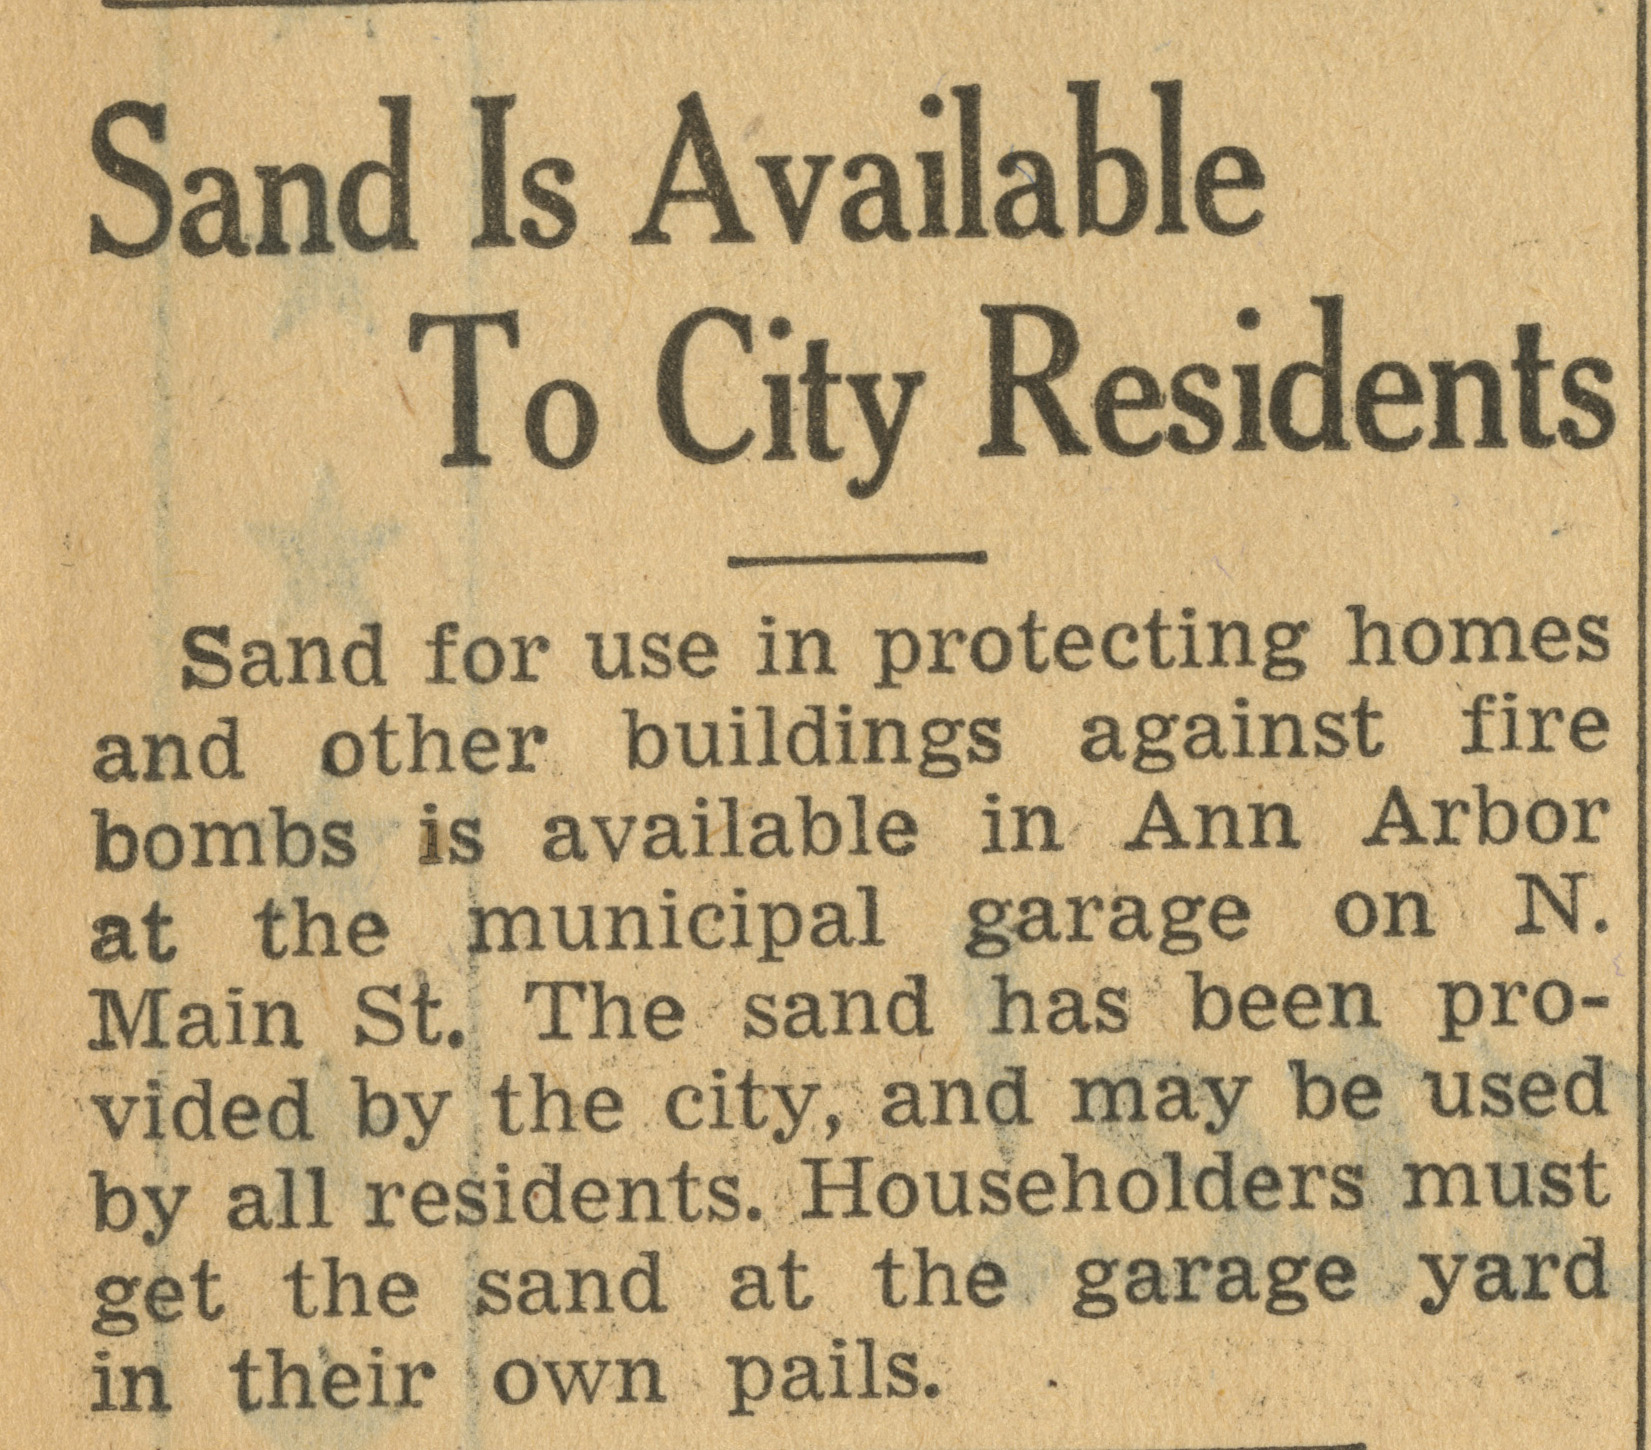 Sand Is Available To City Residents image